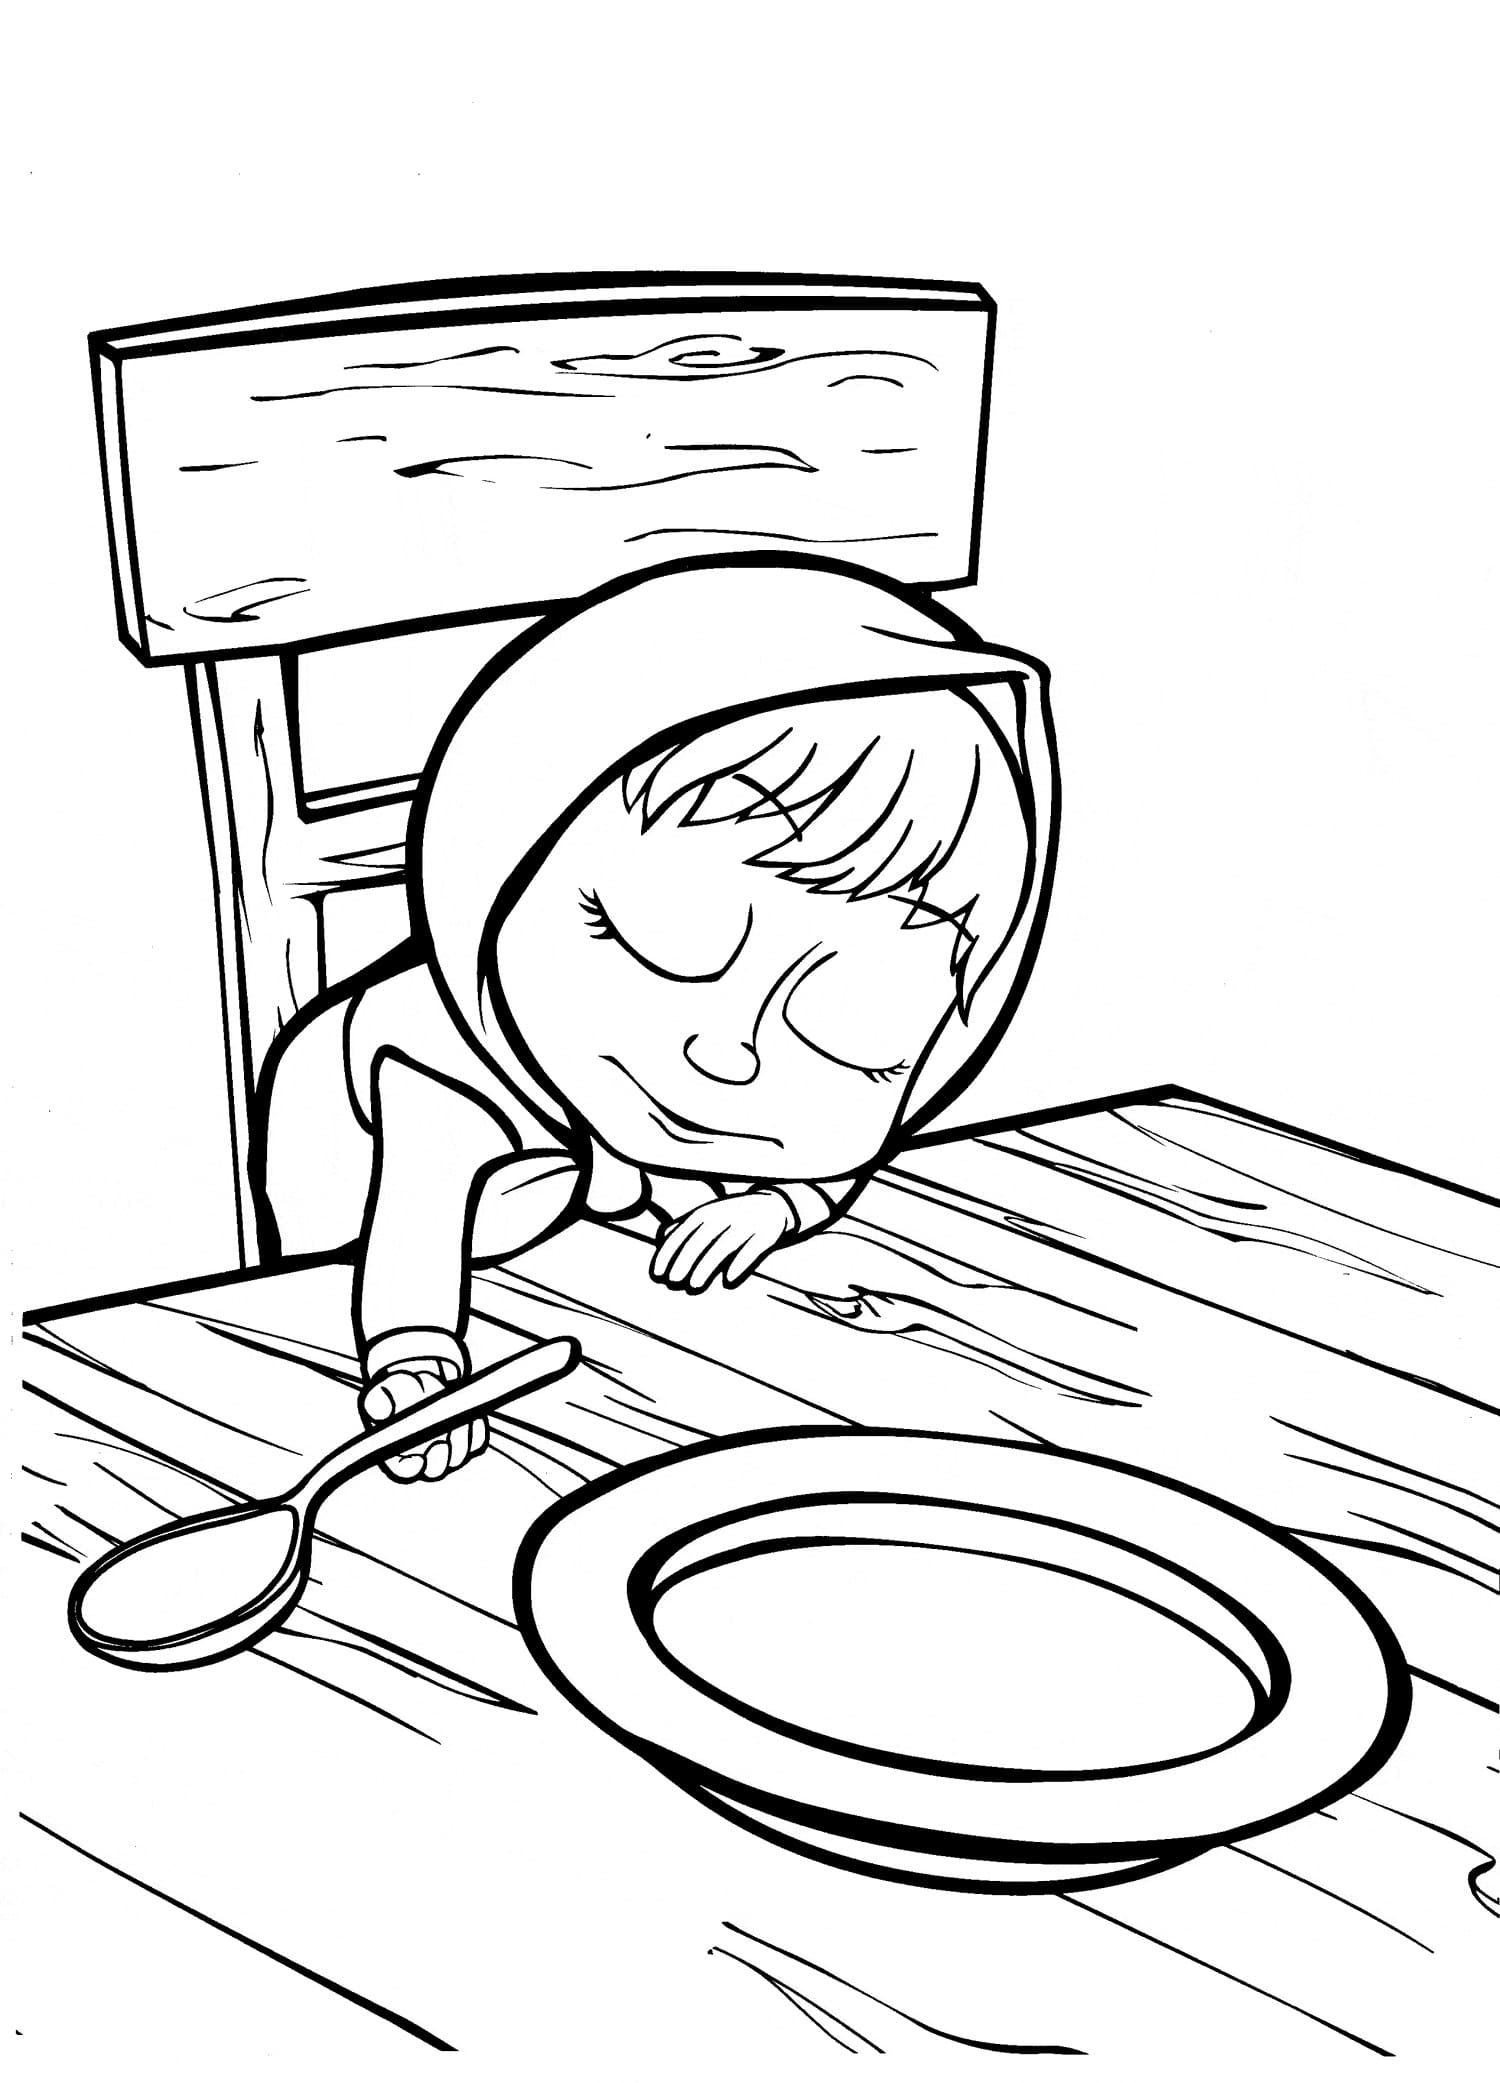 Masha And The Bear Coloring Pages 80 Images Free Printable